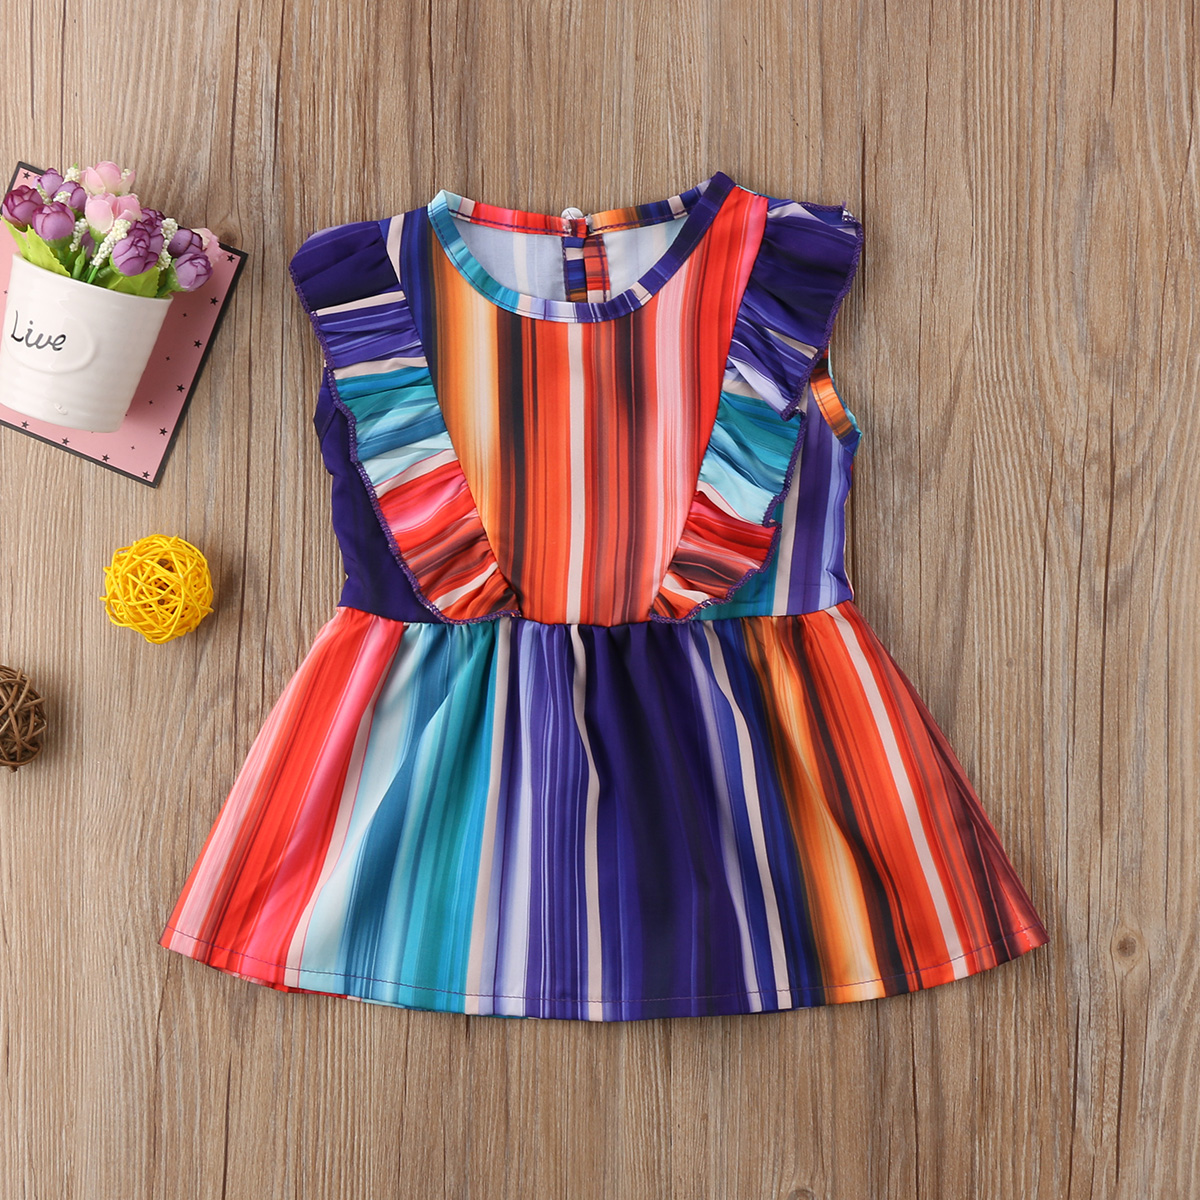 Fashion Summer Kids Baby Girl Rainbow Princess A-line Dress Fly Sleeve Party Pageant Prom Sundress Cotton Clothes 2017 new summer children girl long sleeve lace dress kids clothes cotton child party princess tank girl dress sundress age 2 10y